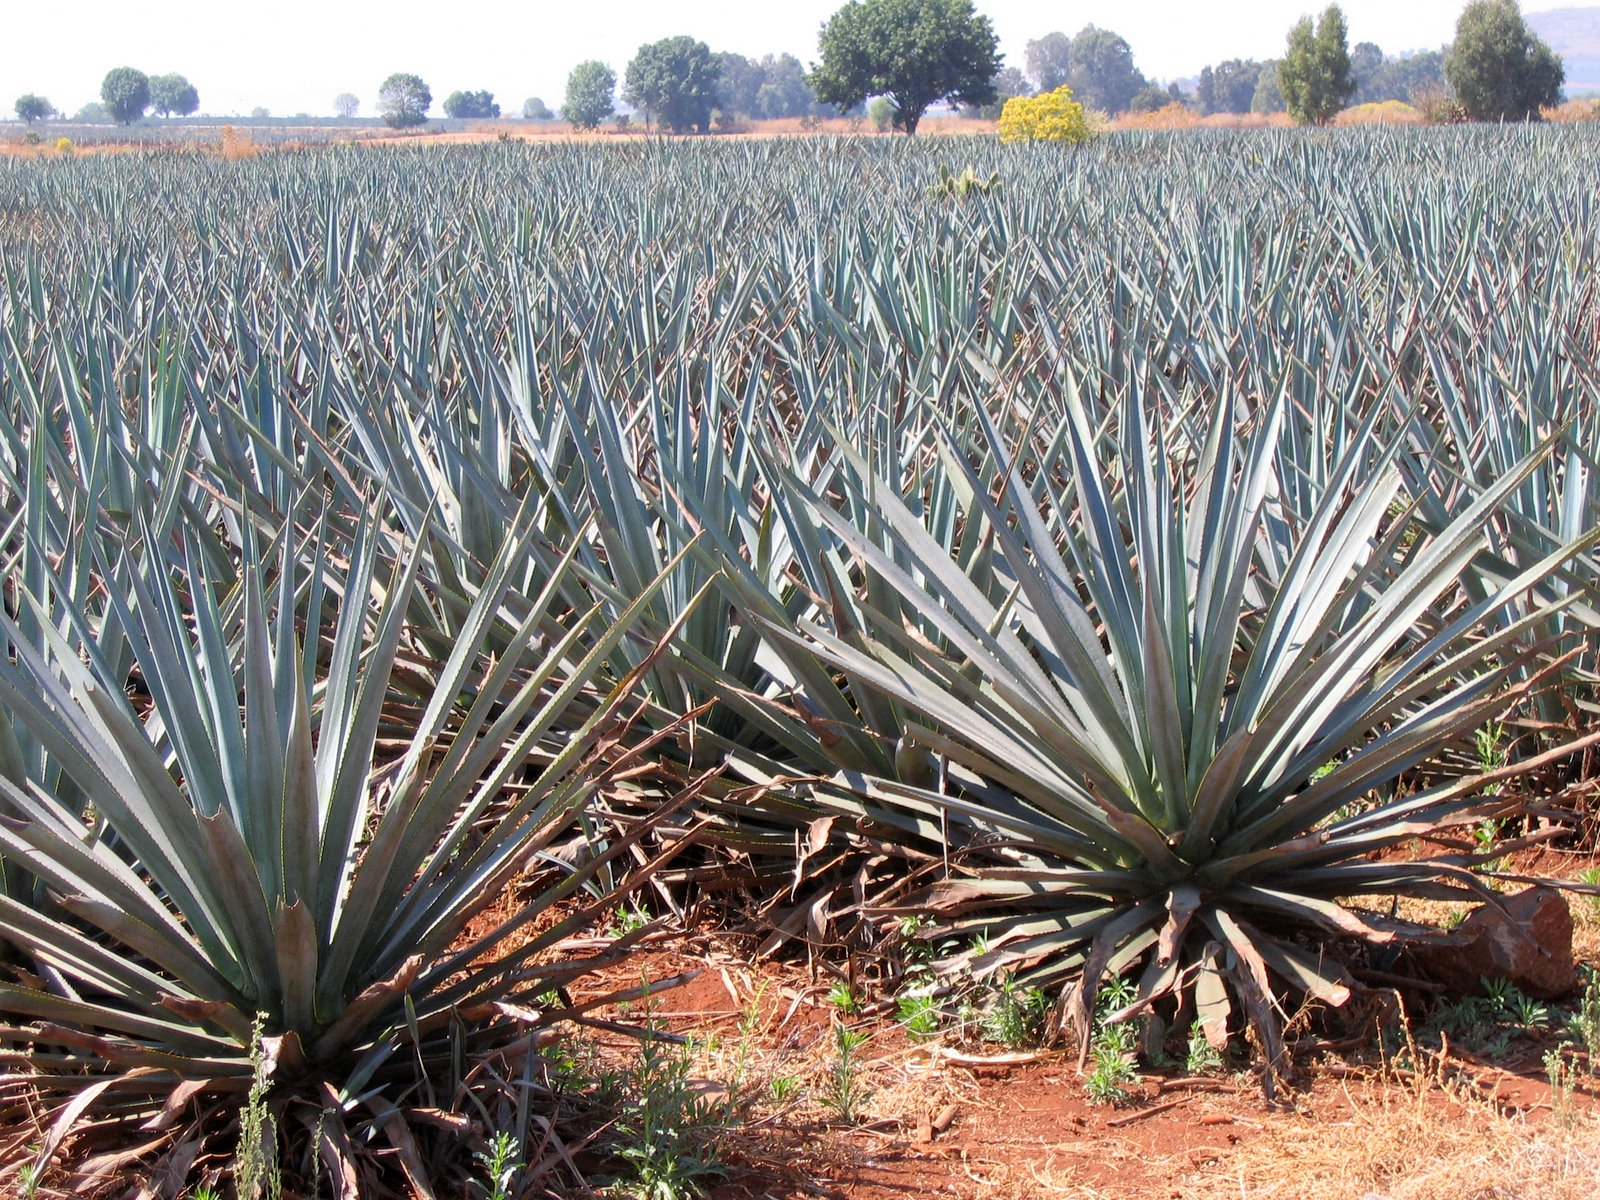 Agave in Mexico